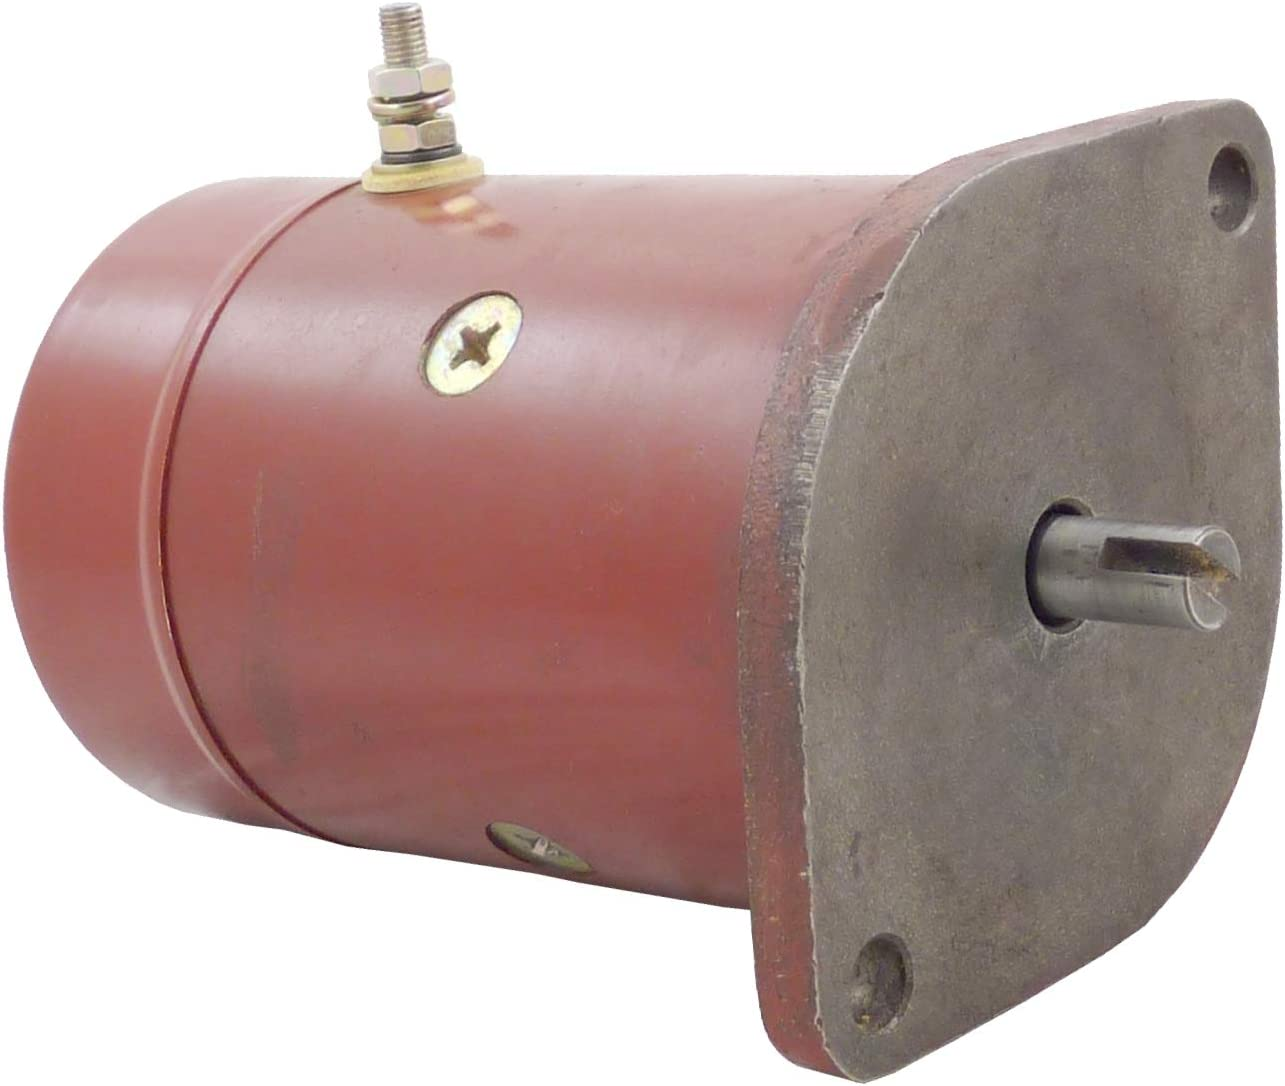 NEW SNOW PLOW MOTOR FOR WESTERN 46-806 MEZ-7002 SLOTTED 430-20001 25556 AMT0570